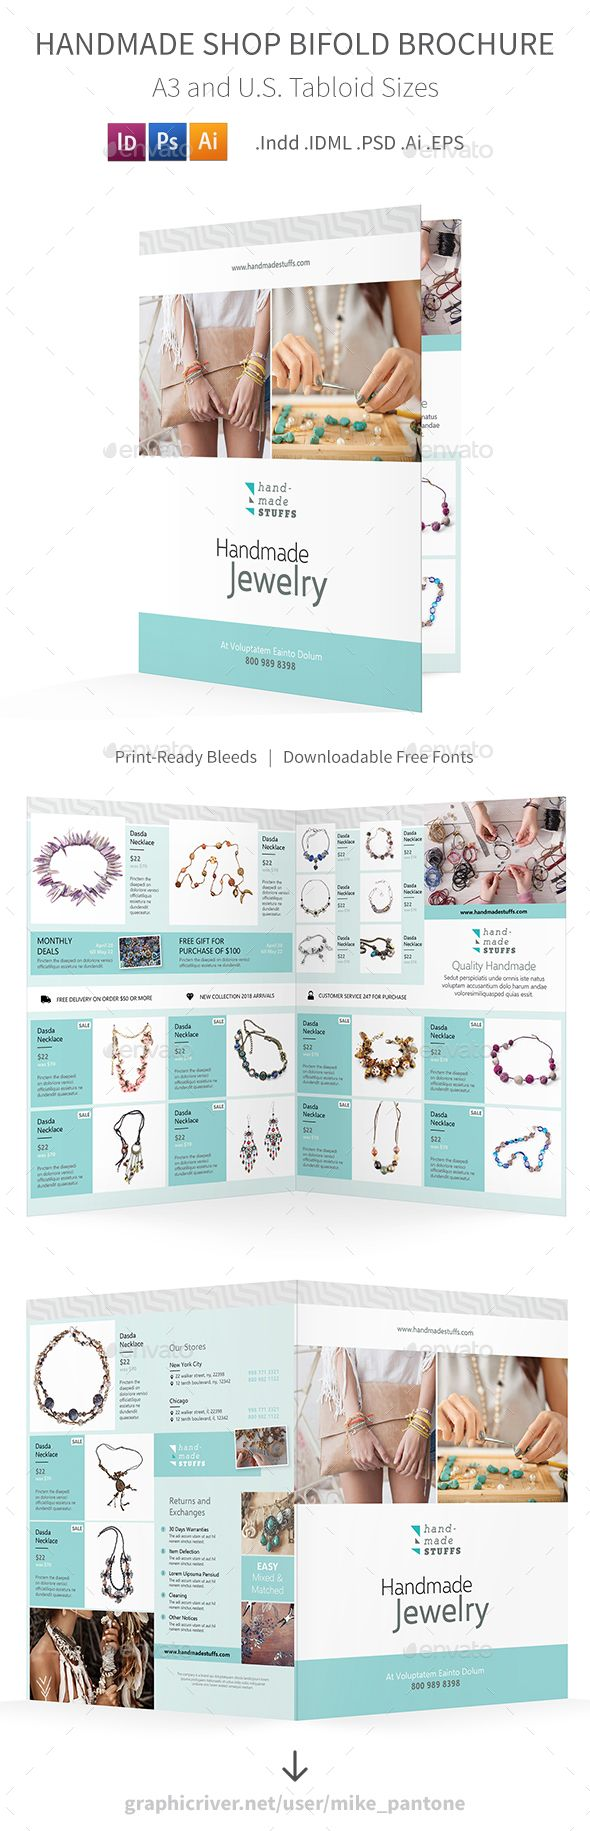 Handmade Shop Bifold / Halffold Brochure Template PSD, Vector EPS, InDesign INDD...